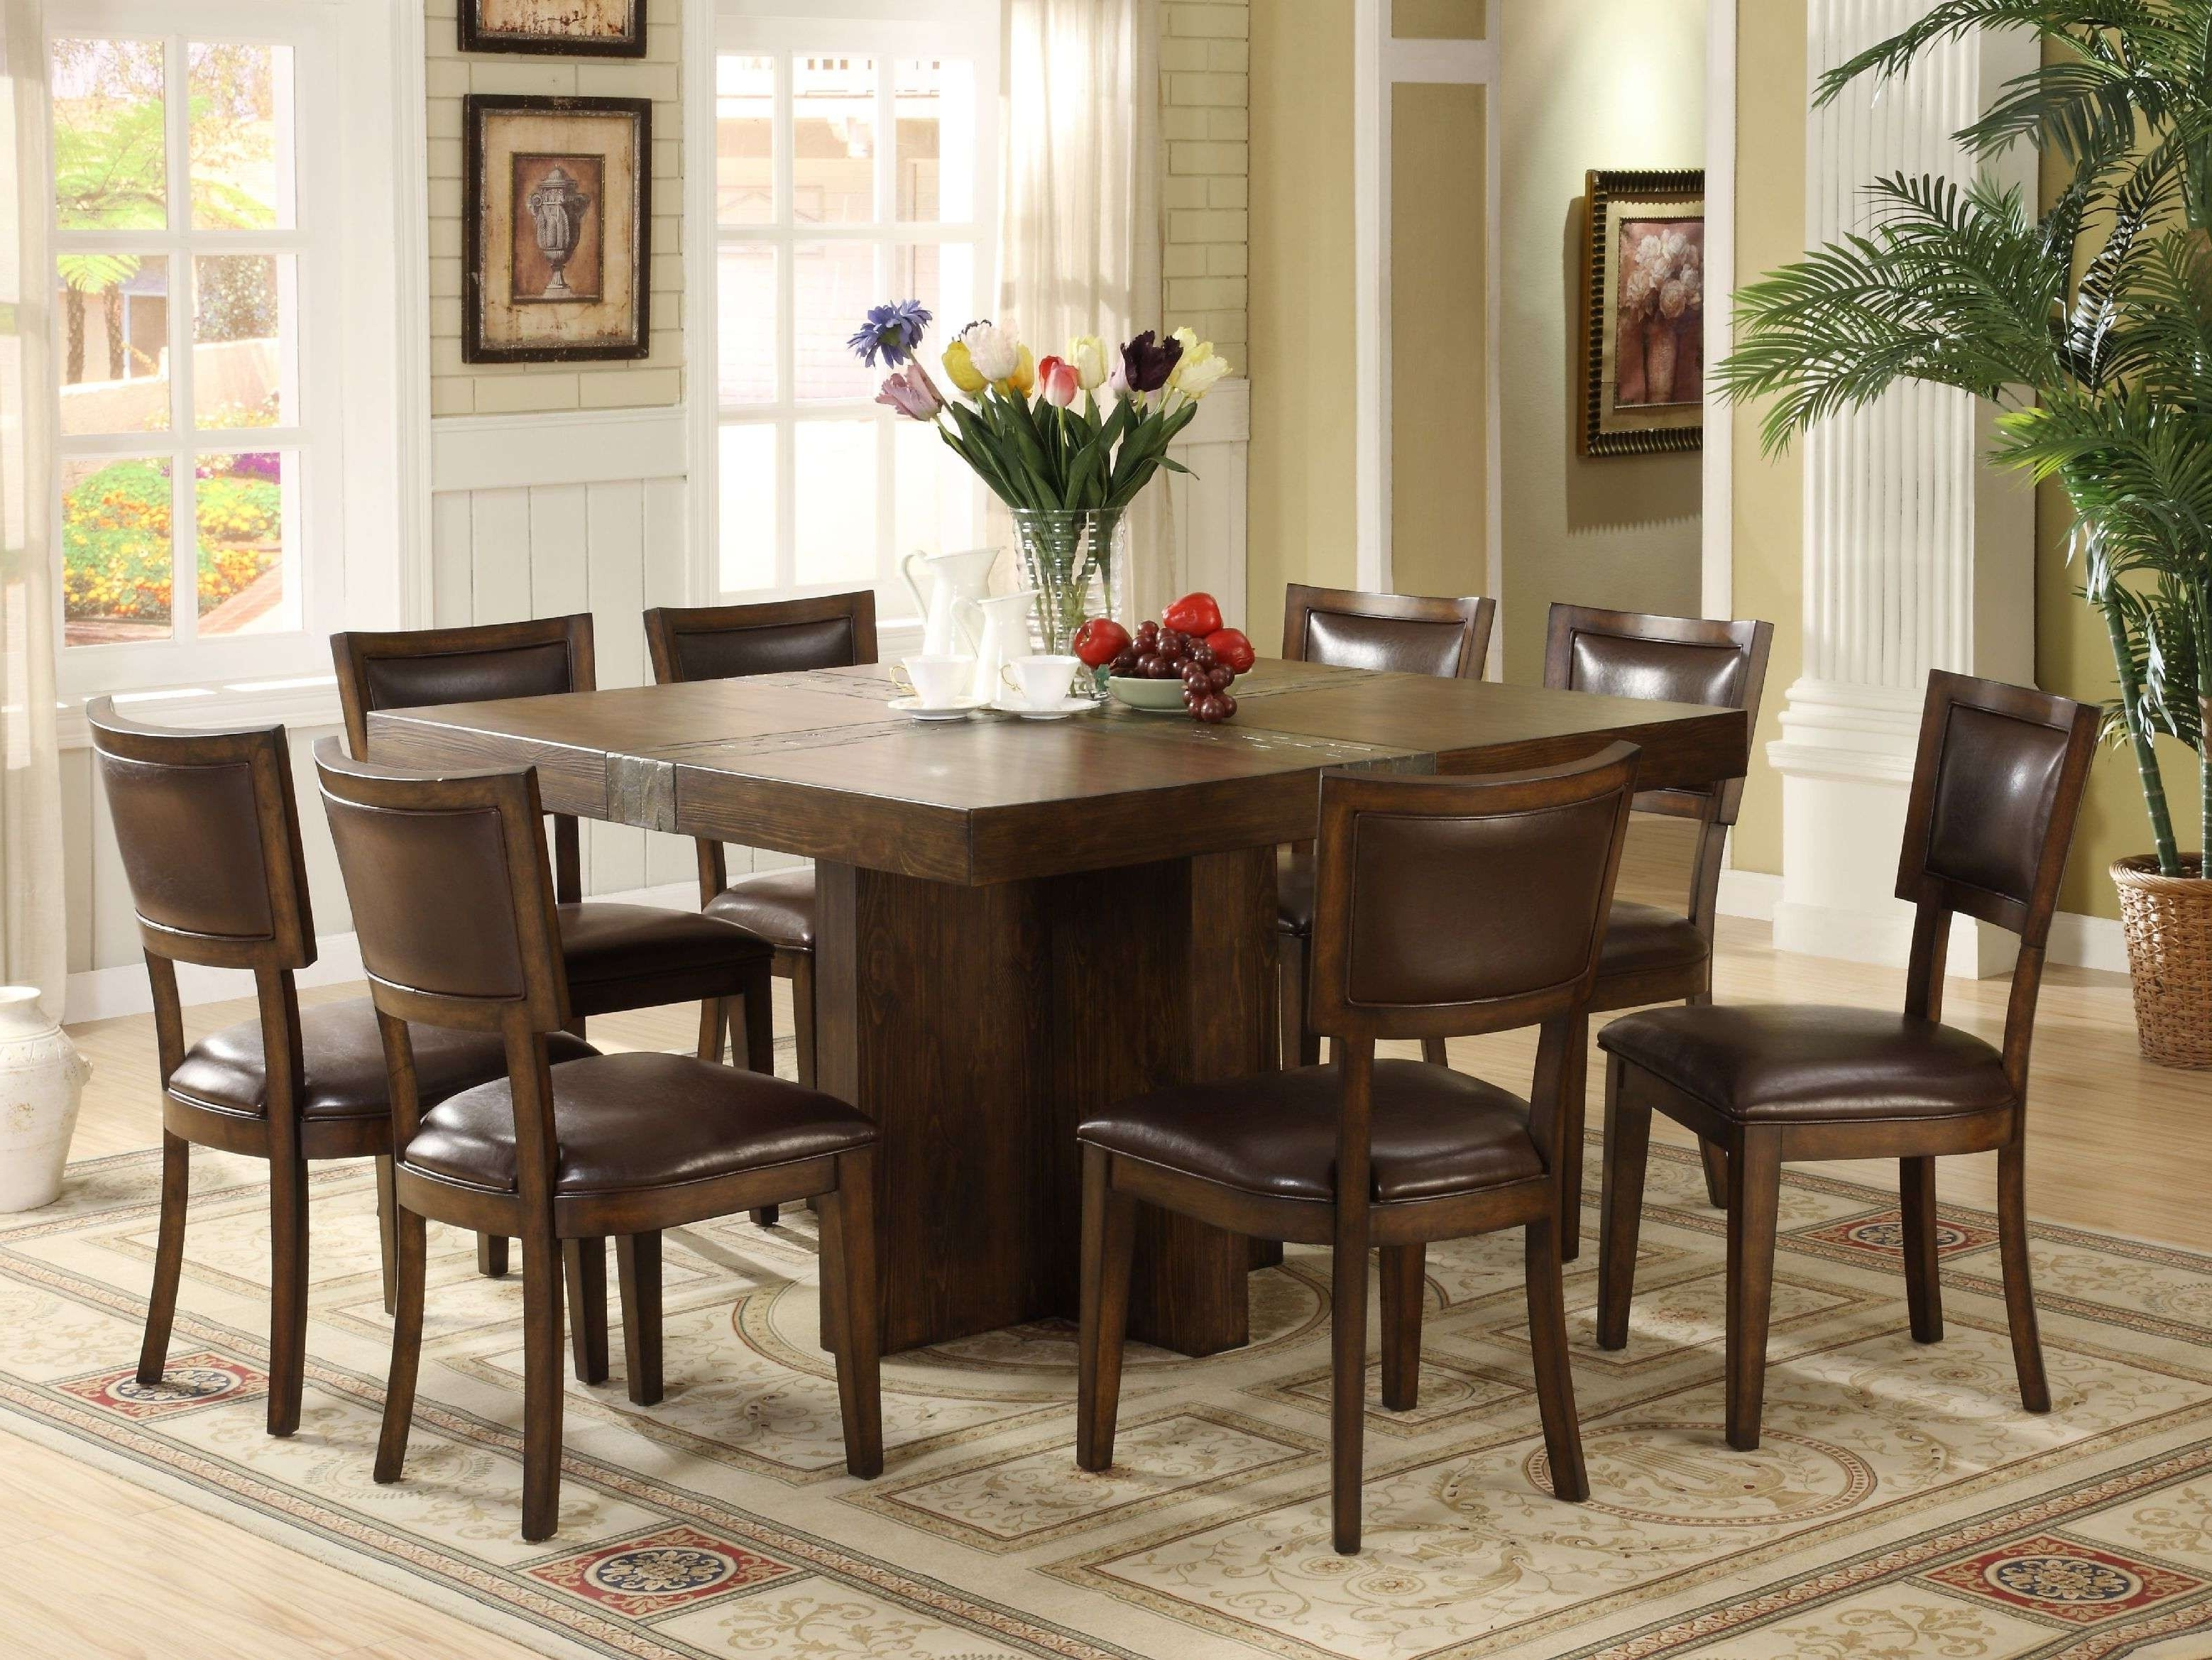 Preferred Dining Tables For 8 Throughout 10 Seater Dining Table And Chairs Beautiful Best 8 Seater Dining (View 17 of 25)